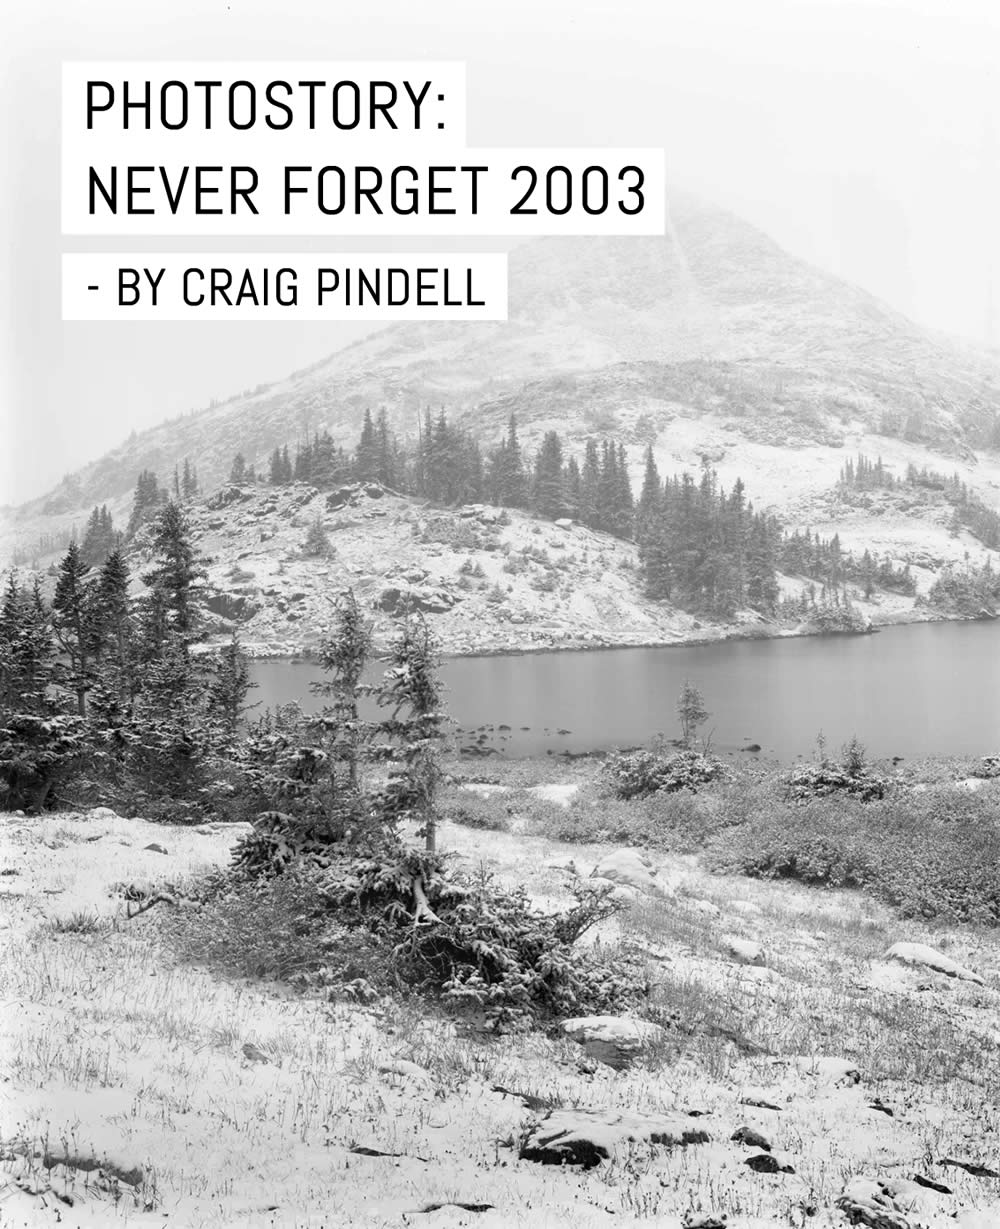 Photostory: Never Forget 2003 – by Craig Pindell